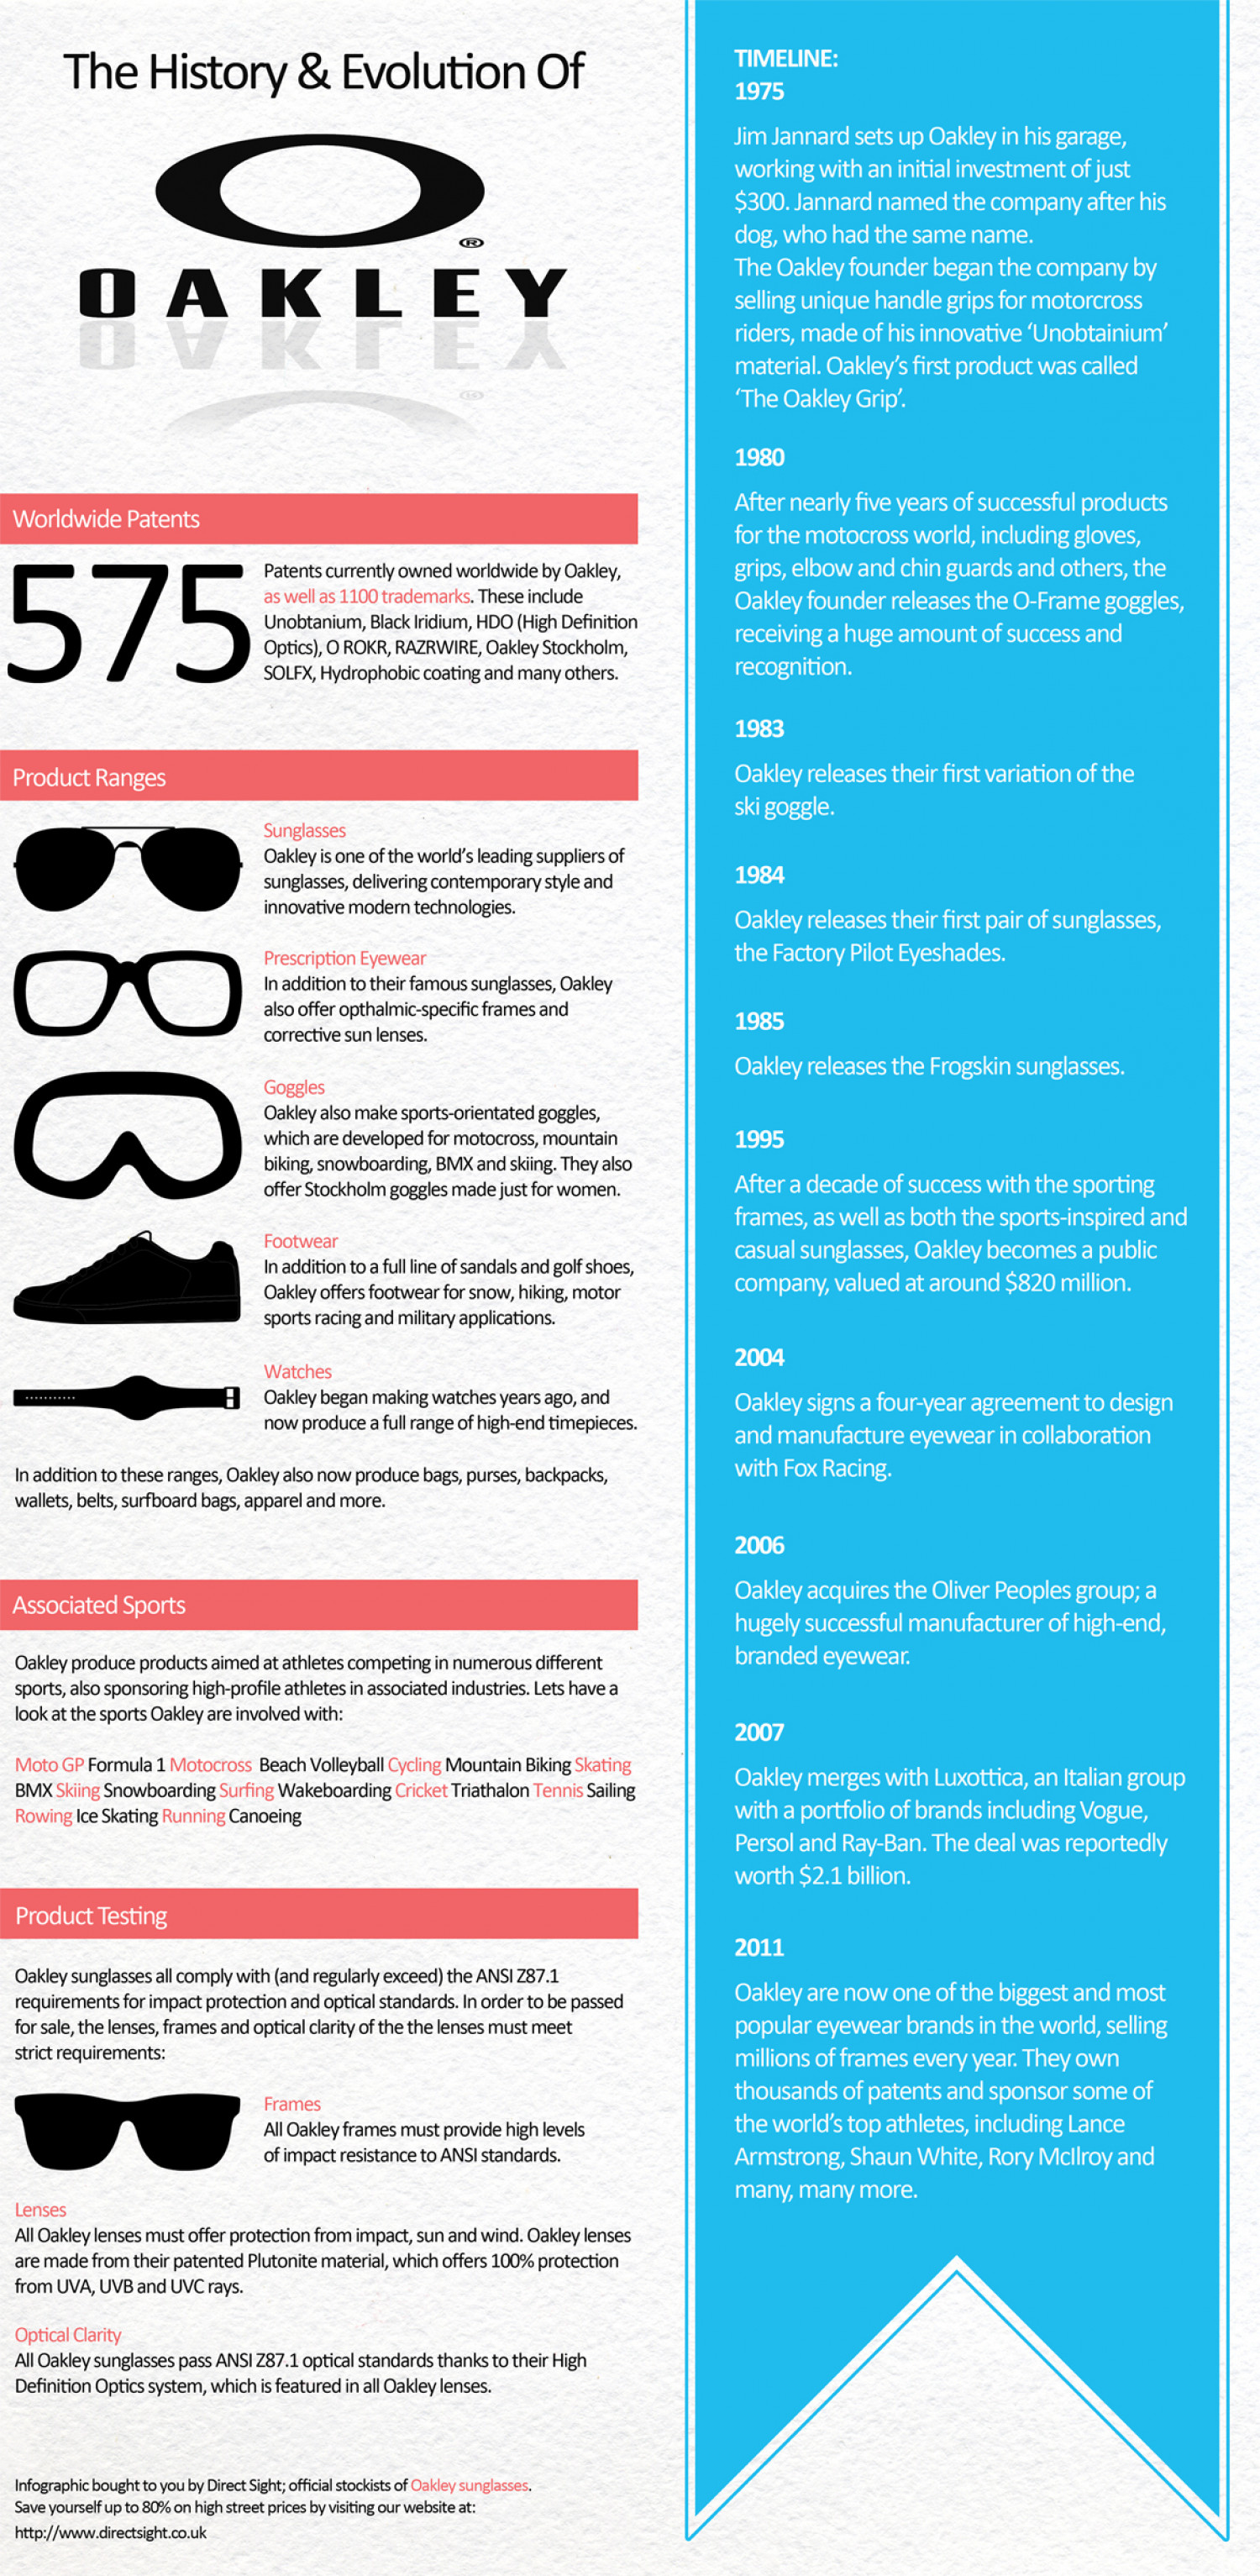 The History And Evolution Of Oakley Infographic